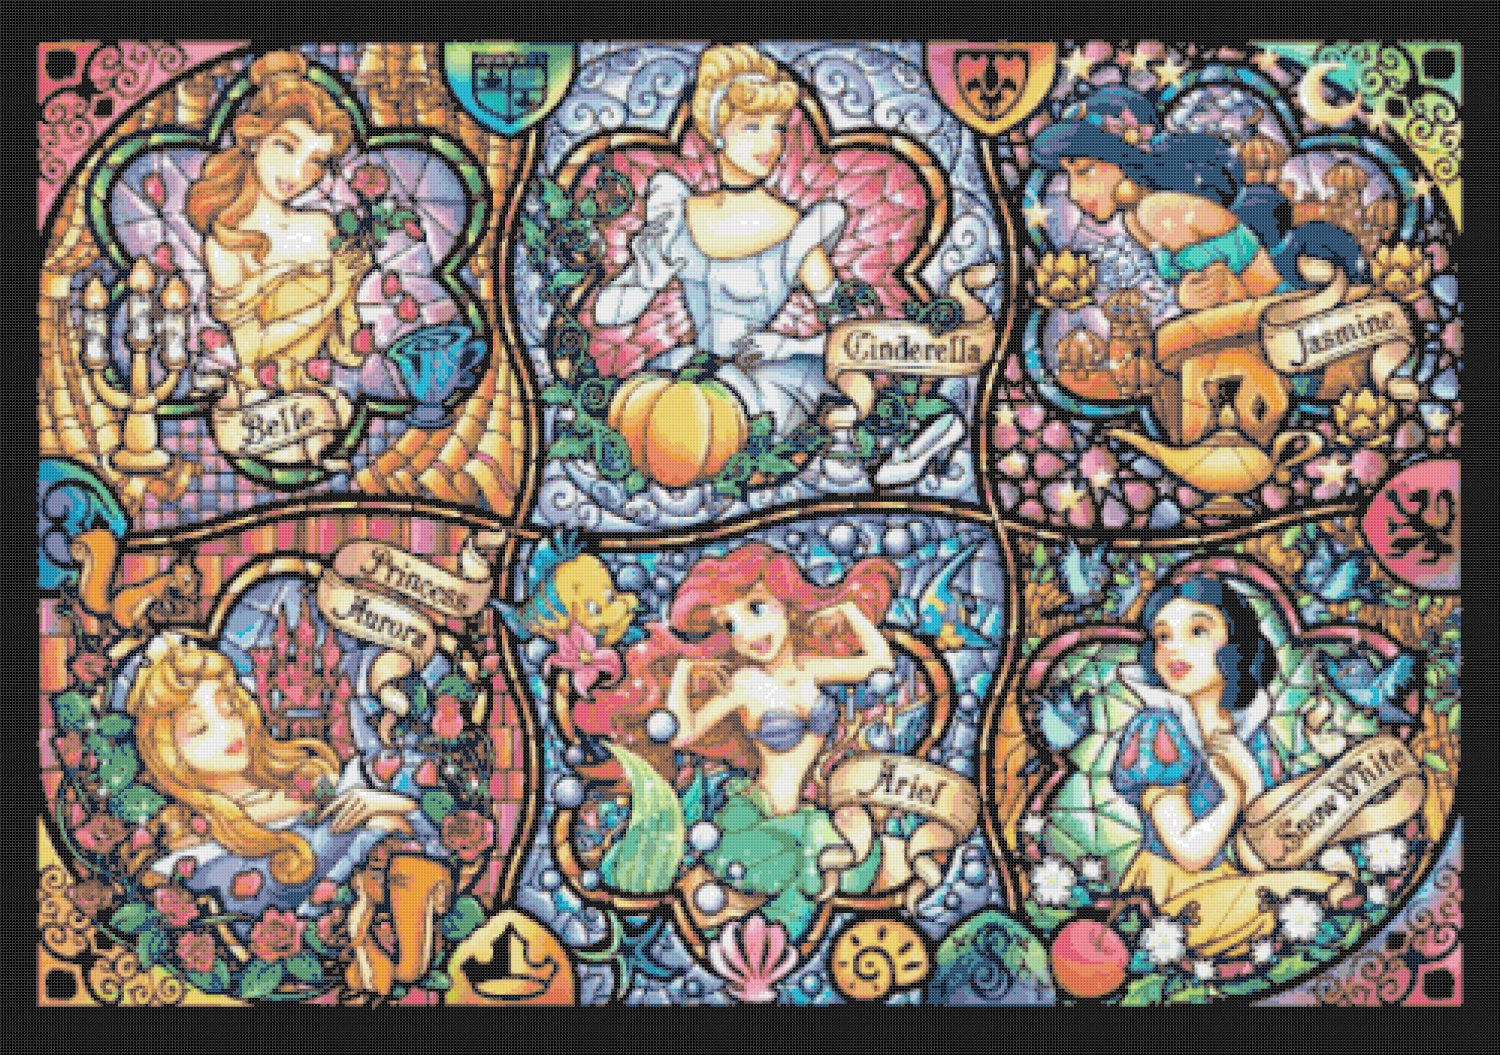 counted Cross stitch pattern Six princesses stained glass 496*349 stitches E715